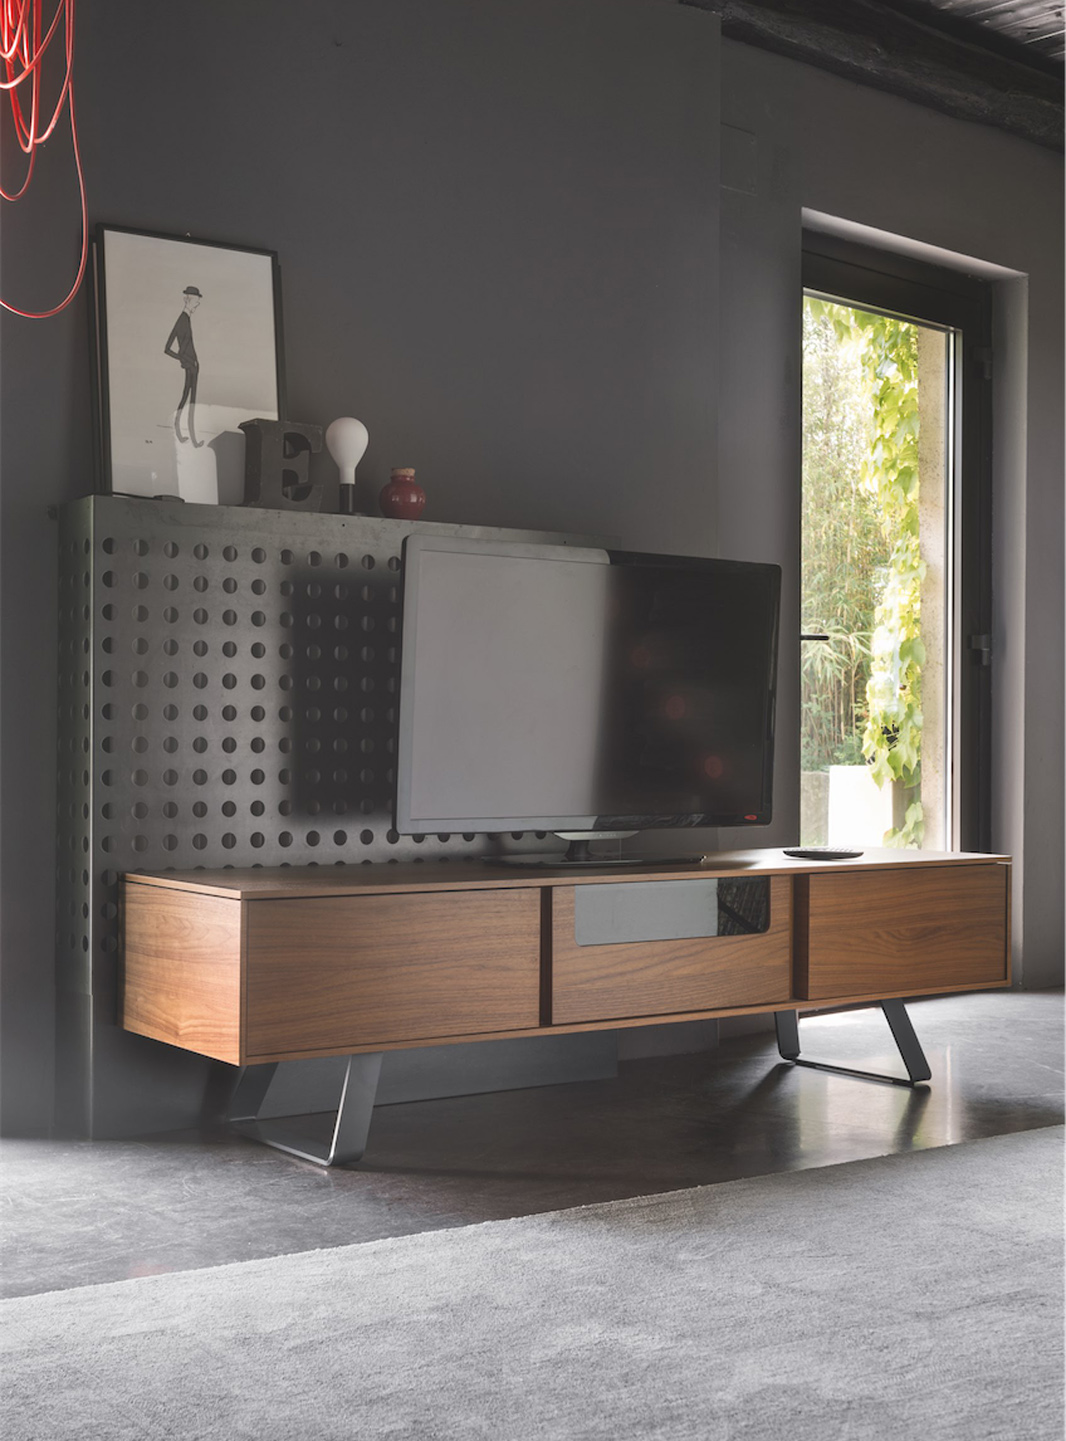 Meuble Calligaris Secret Meuble Audio Video Calligaris Cs 6053 6